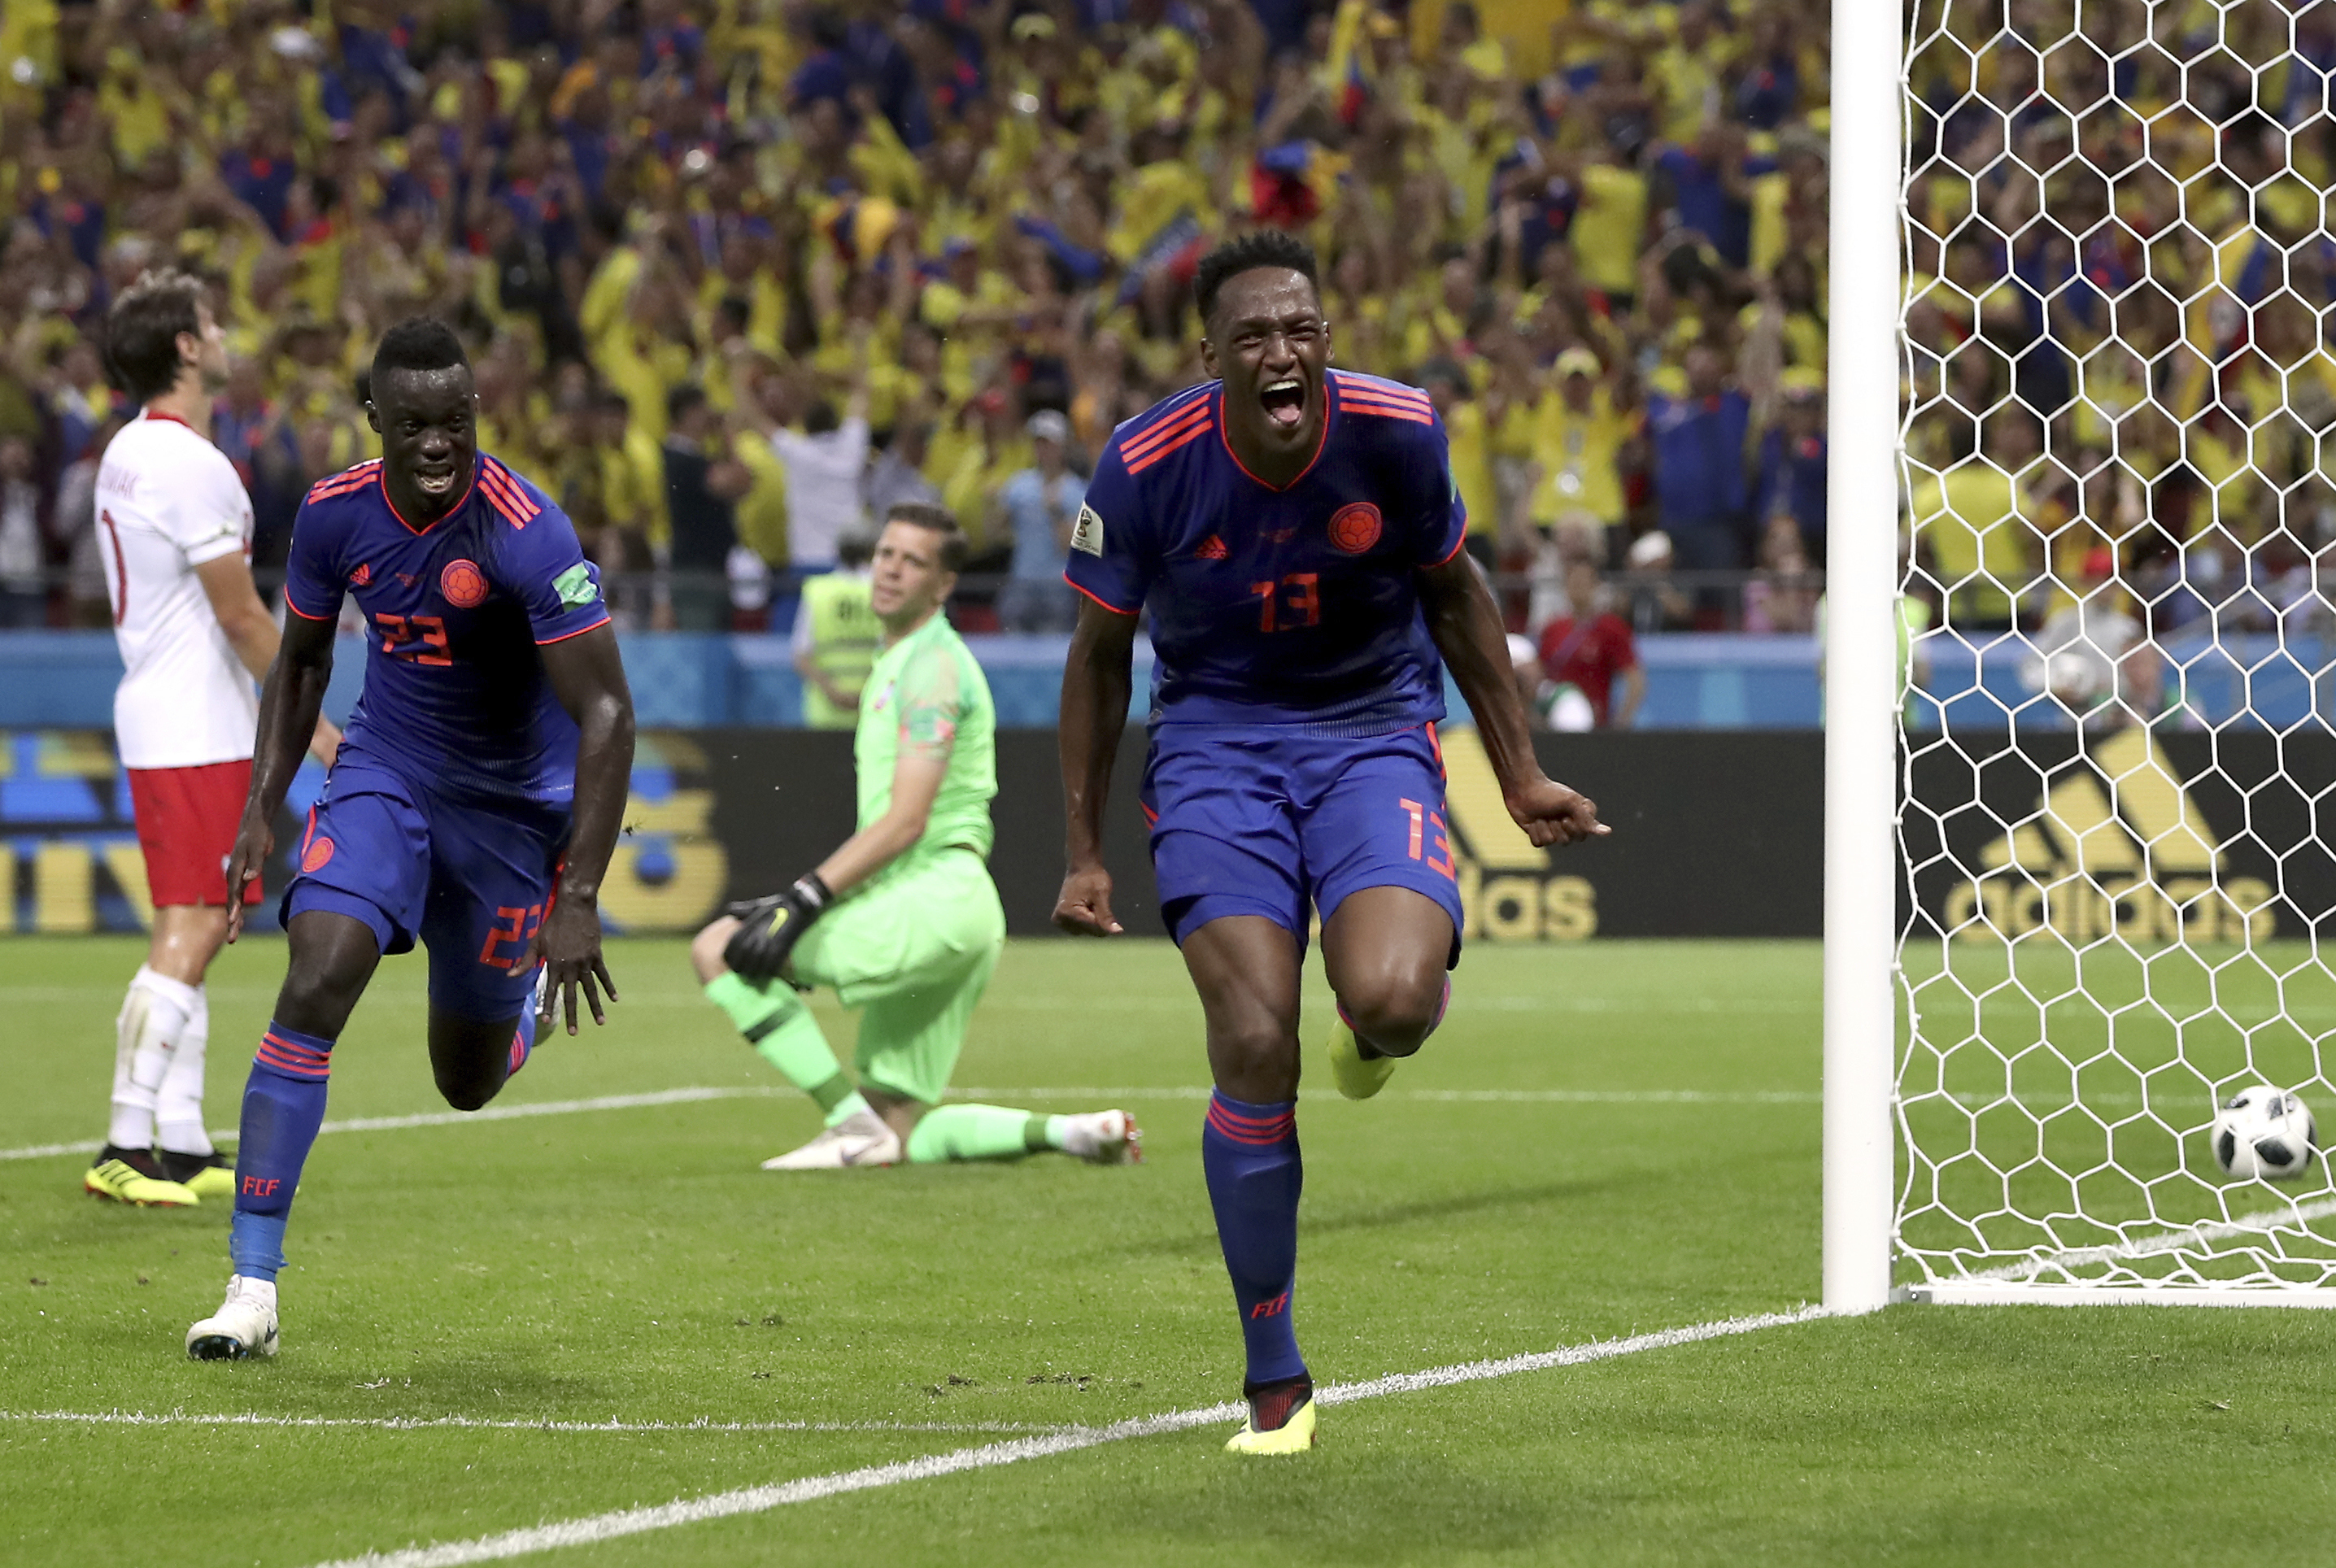 <div class='meta'><div class='origin-logo' data-origin='none'></div><span class='caption-text' data-credit='Thanassis Stavrakis/AP Photo'>Colombia's scorer Yerry Mina, right and his teammate Davinson Sanchez, left, celebrate the opening goal during the group H match against Poland at the Kazan Arena on June 24.</span></div>